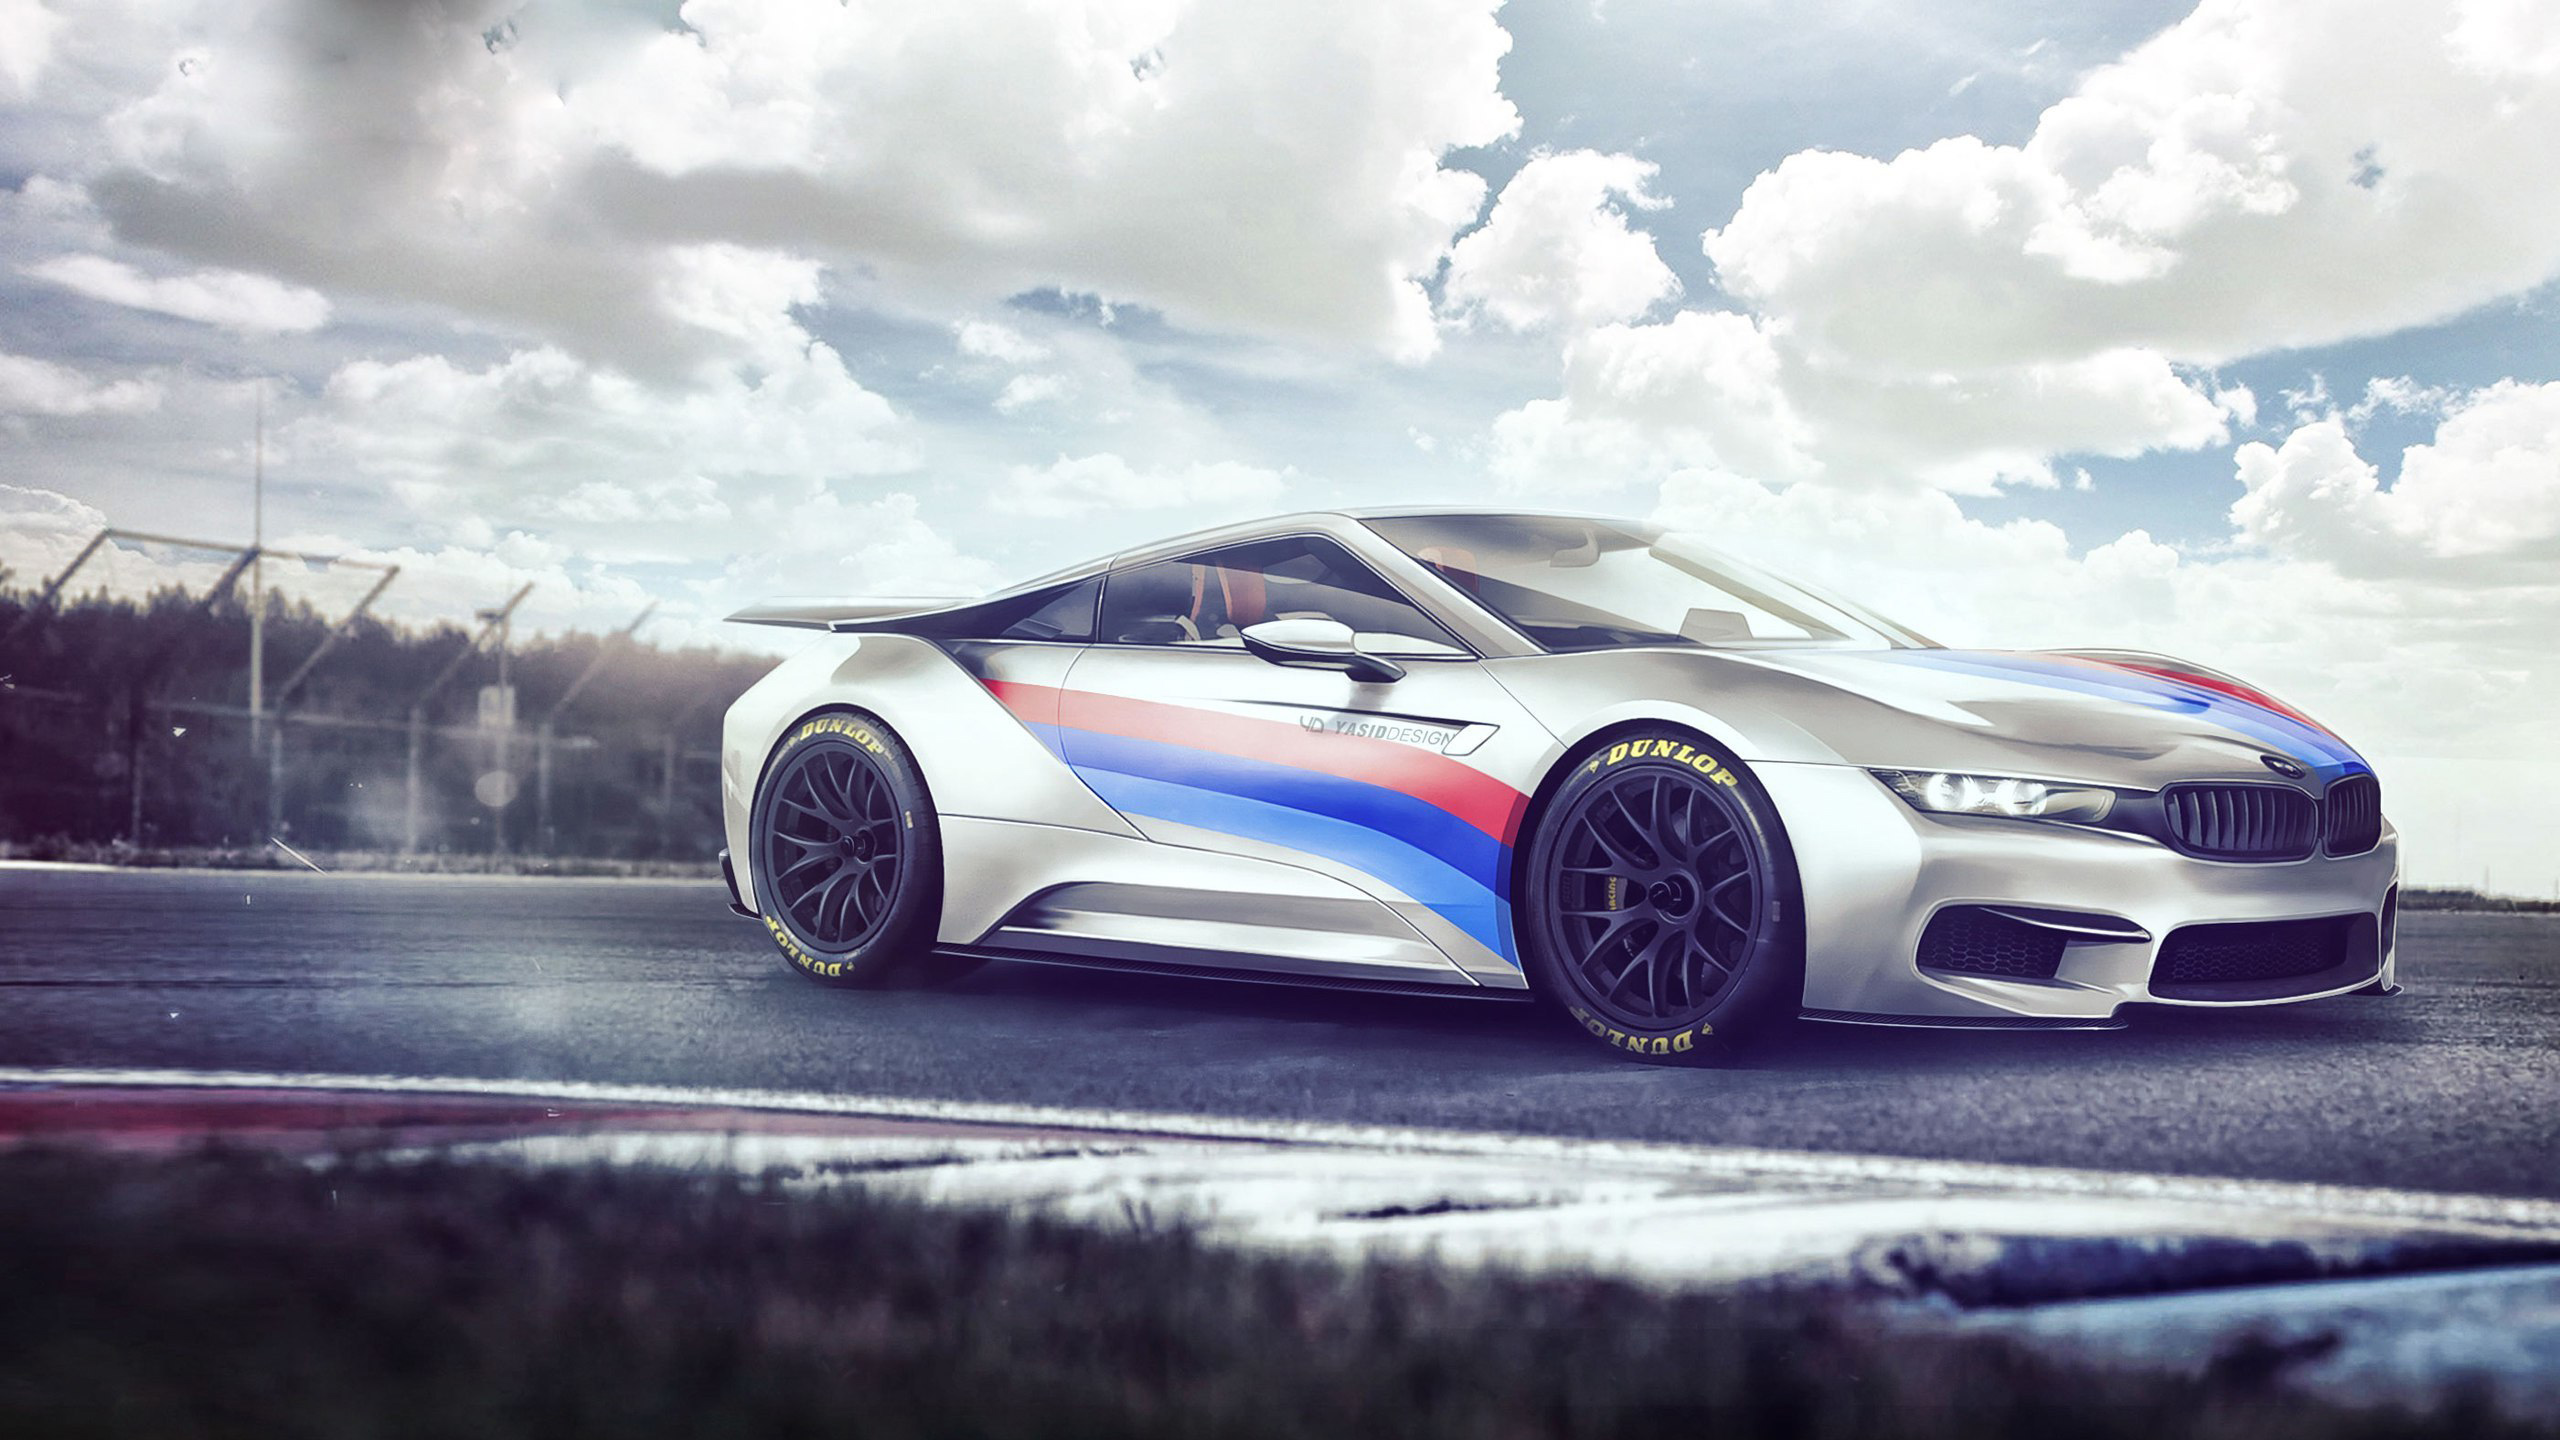 Bmw I8 Concept Electro Wallpaper Hd Car Wallpapers Id 5916